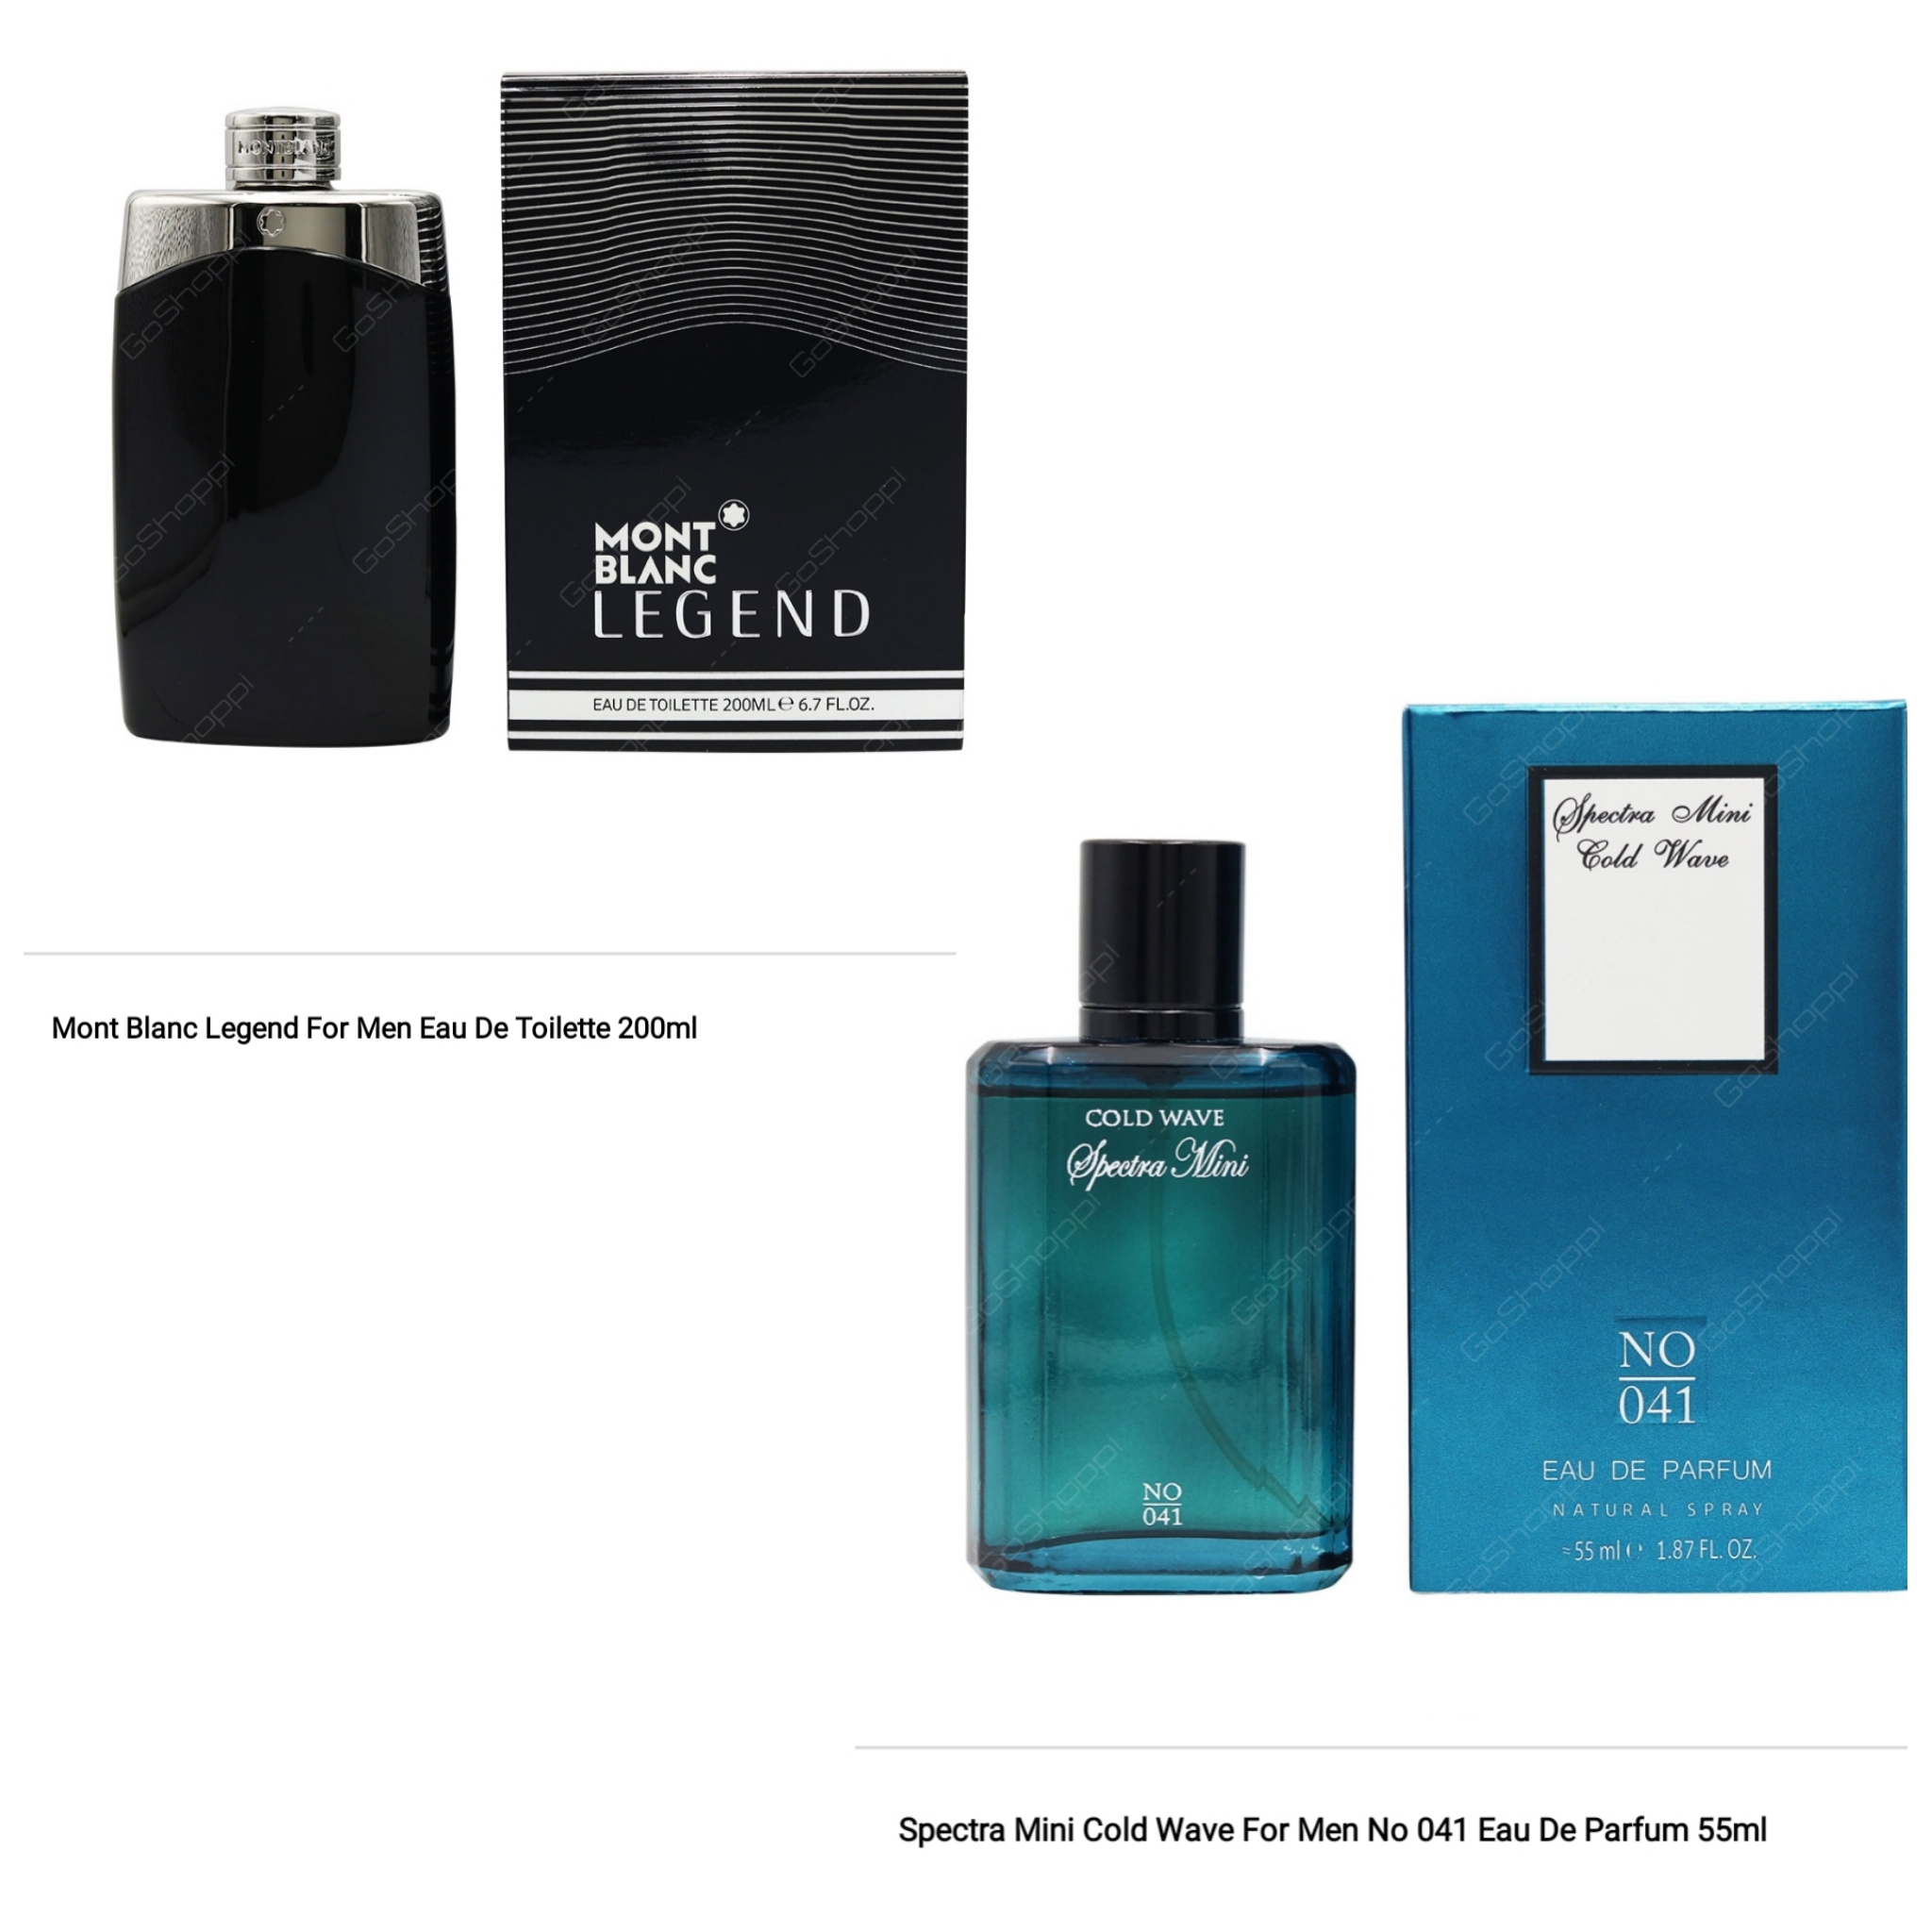 Free Spectra 55ml with Mont Blanc Legend 200ml